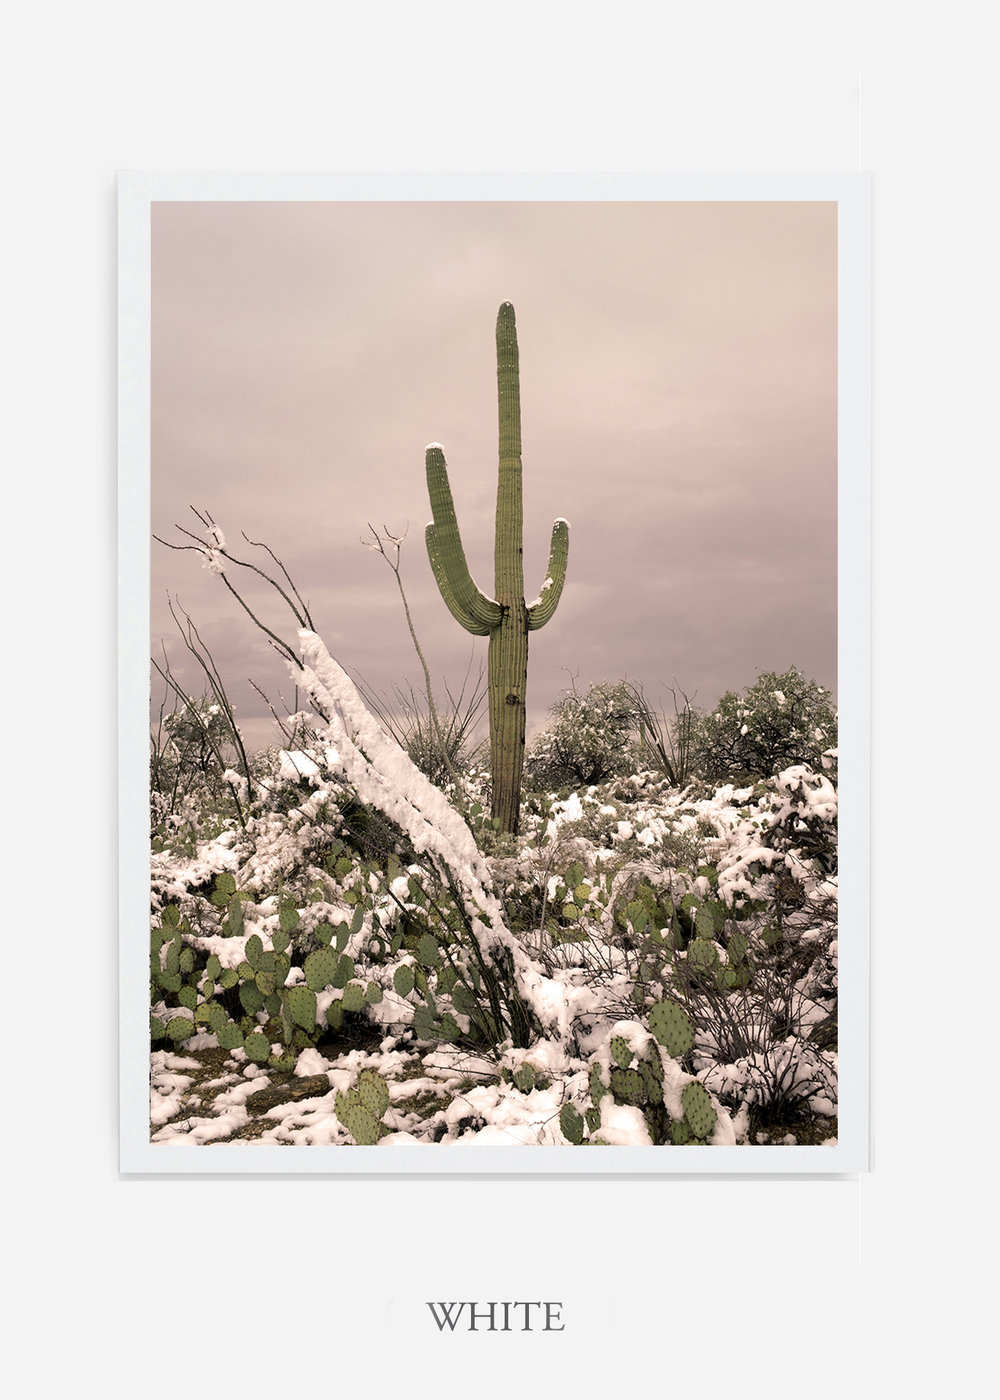 nomat-whiteframe-saguaroNo.4-wildercalifornia-art-wallart-cactusprint-homedecor-prints-arizona-botanical-artwork-interiordesign.jpg